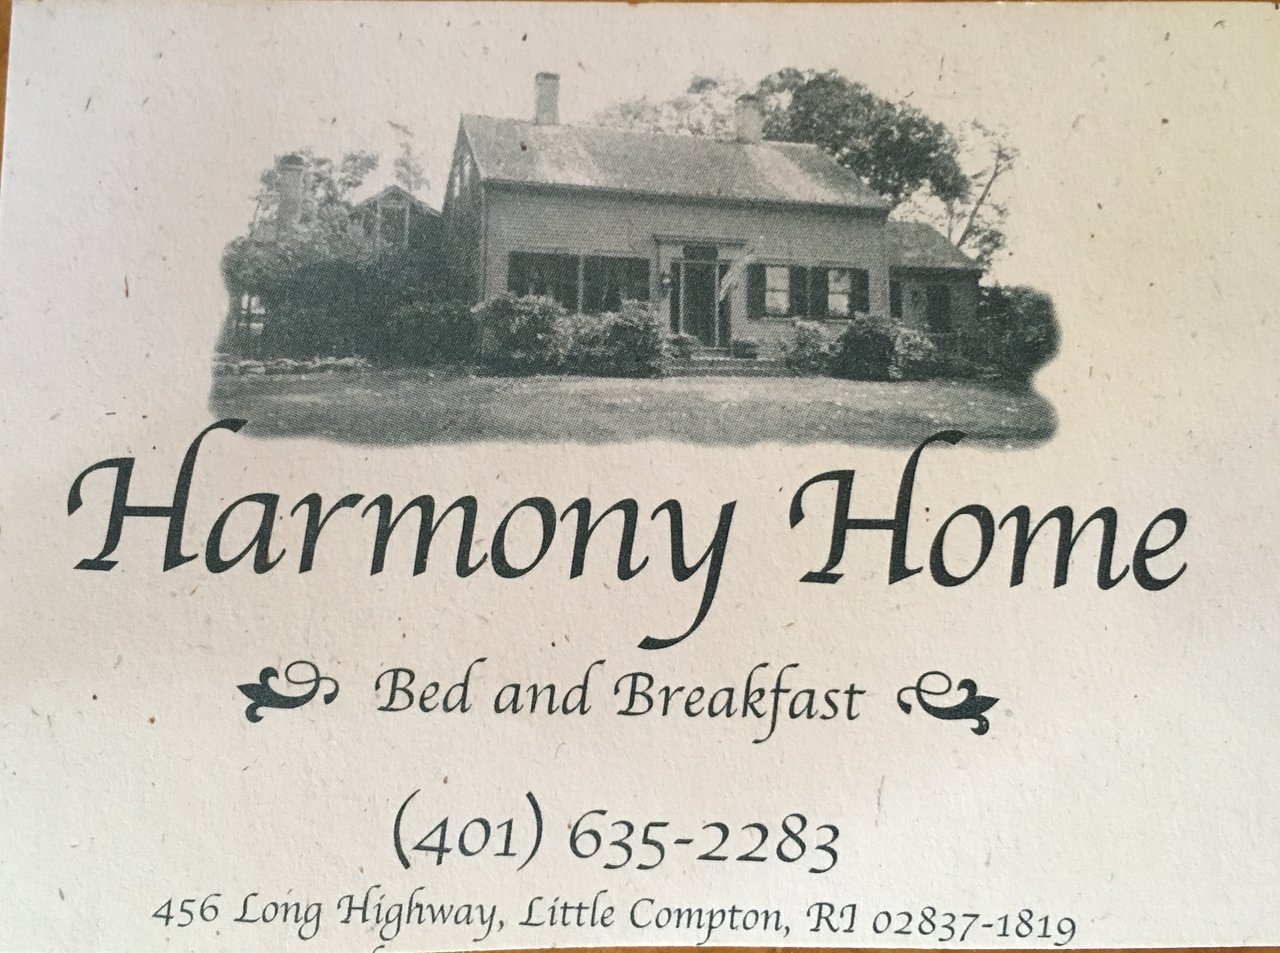 Harmony Home Farm B Hotel Reviews